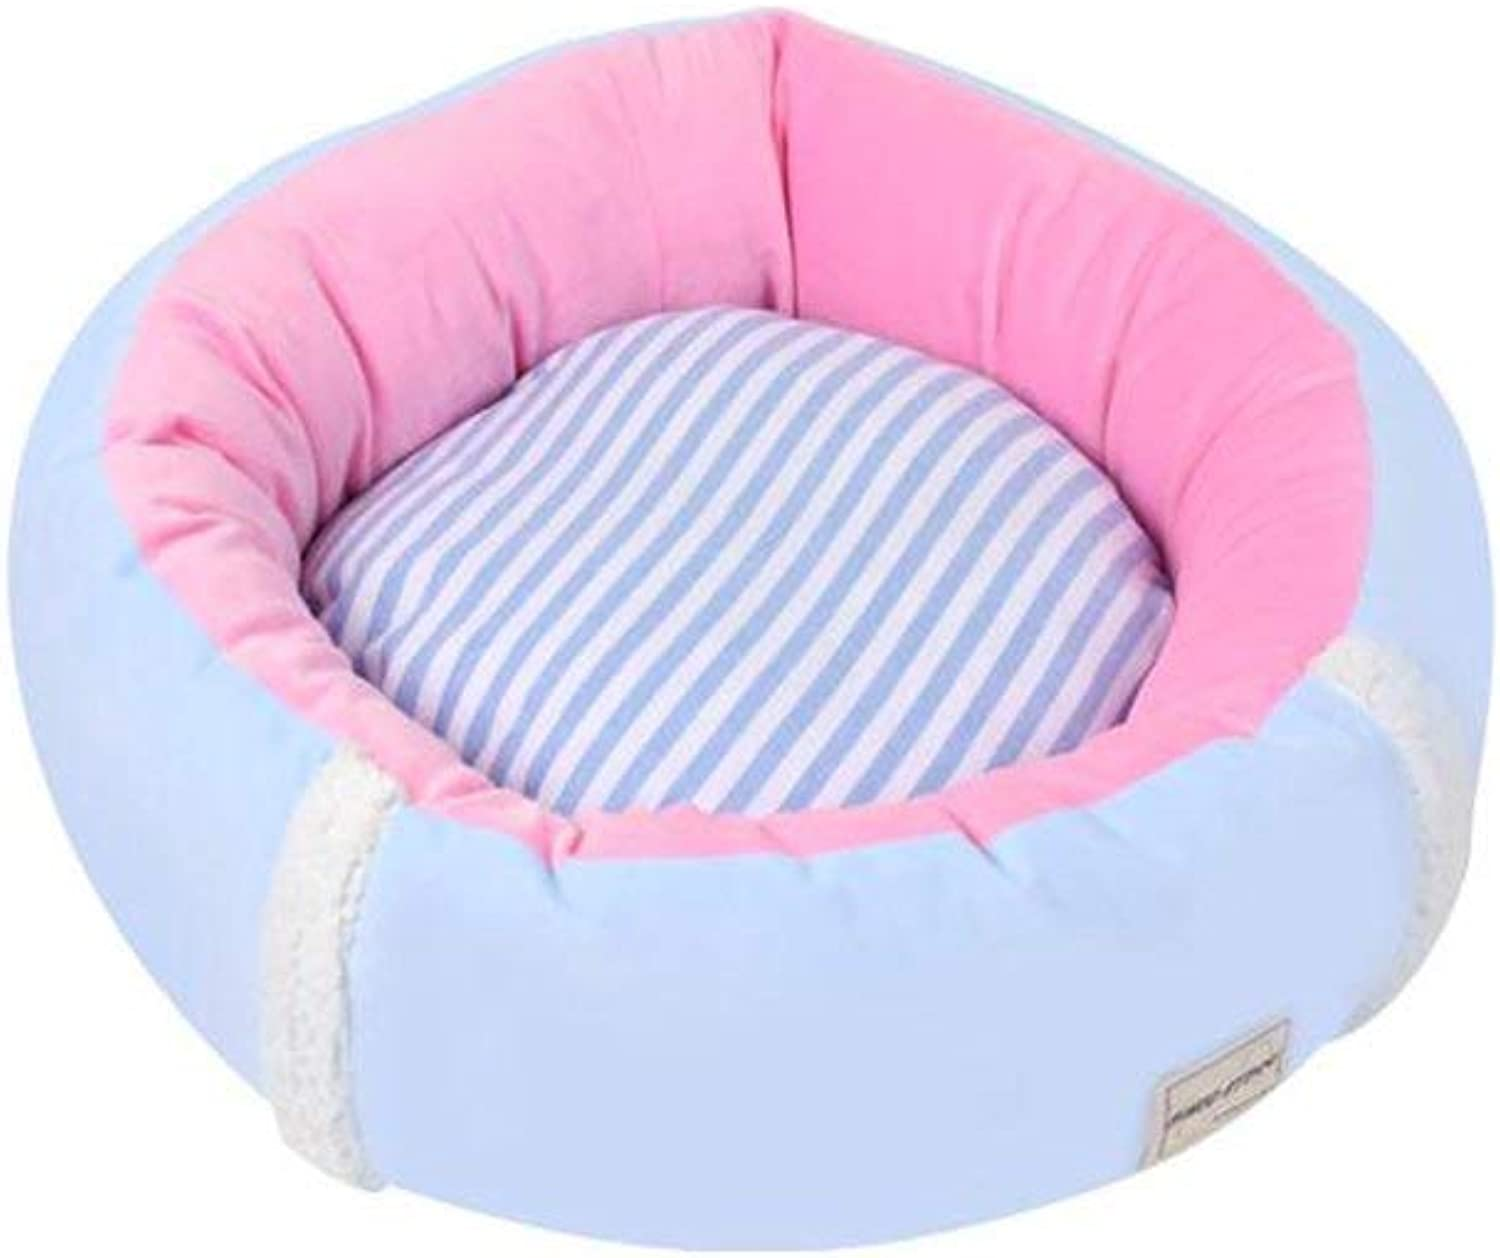 Pet Bed Beds FS421 Super Soft and Comfortable Cats and Dogs Pet Bed Round Shape Four Seasons Universal Removable Wash (color   bluee, Size   Medium)